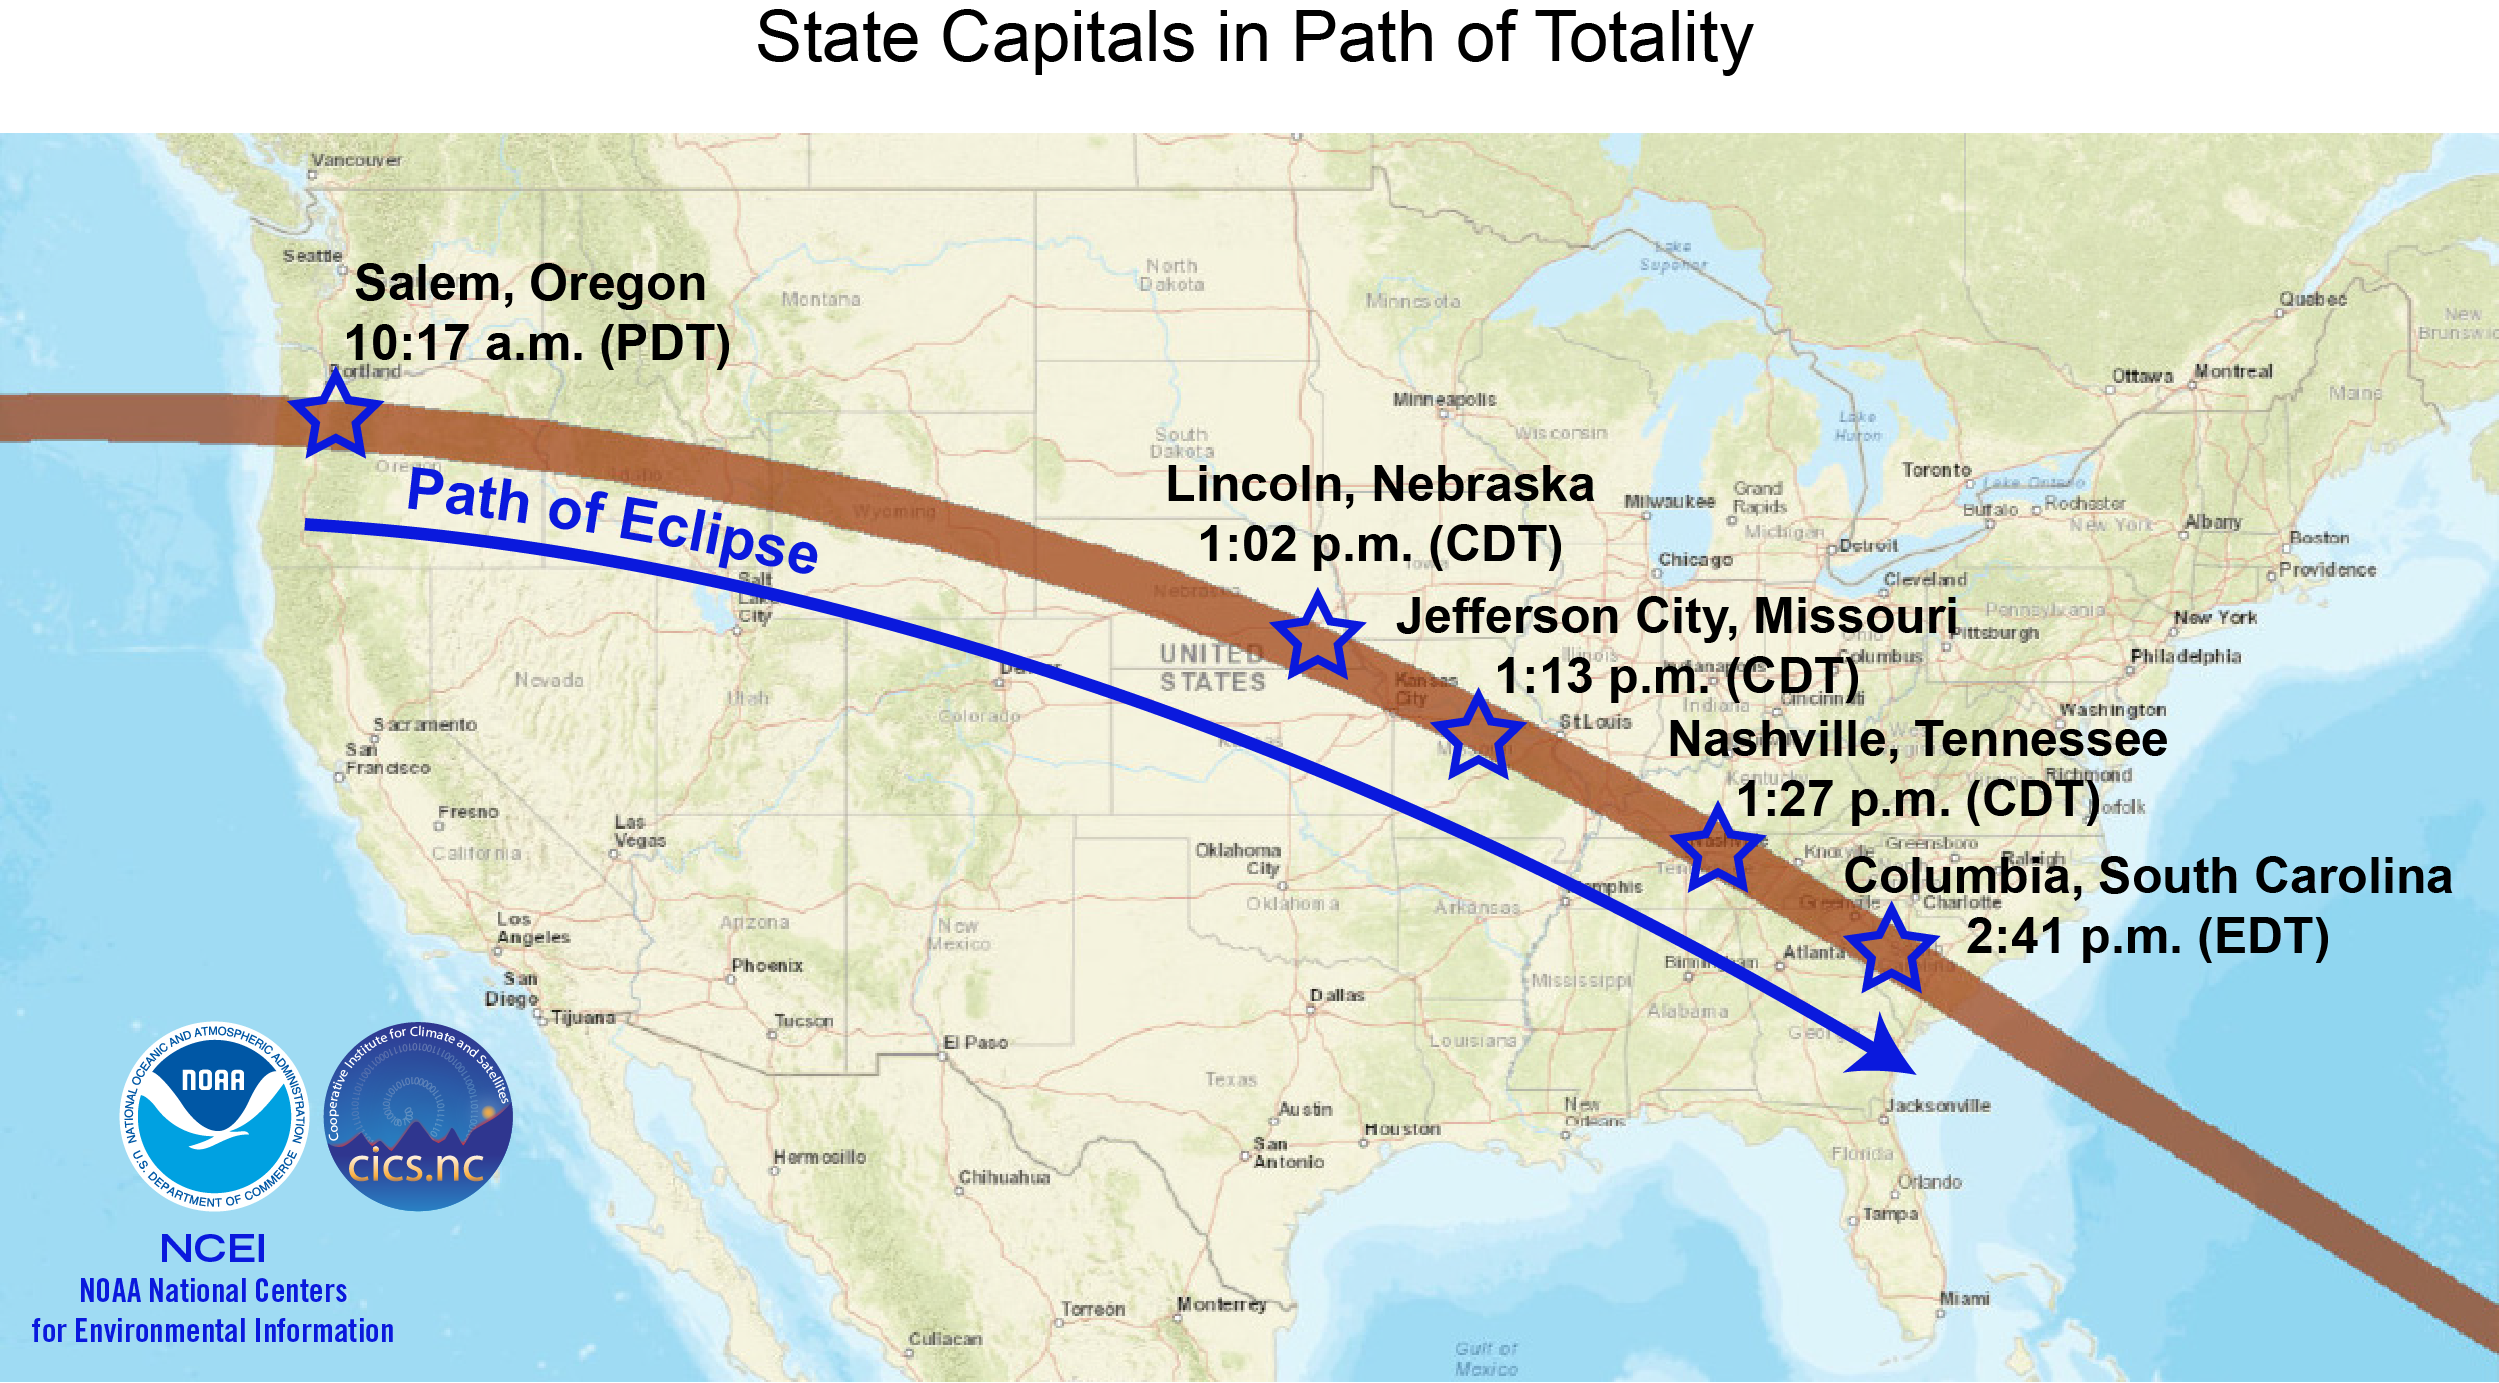 Map of U.S. state capitals in path of total solar eclipse Aug 21 by NOAA NCEI CICS-NC